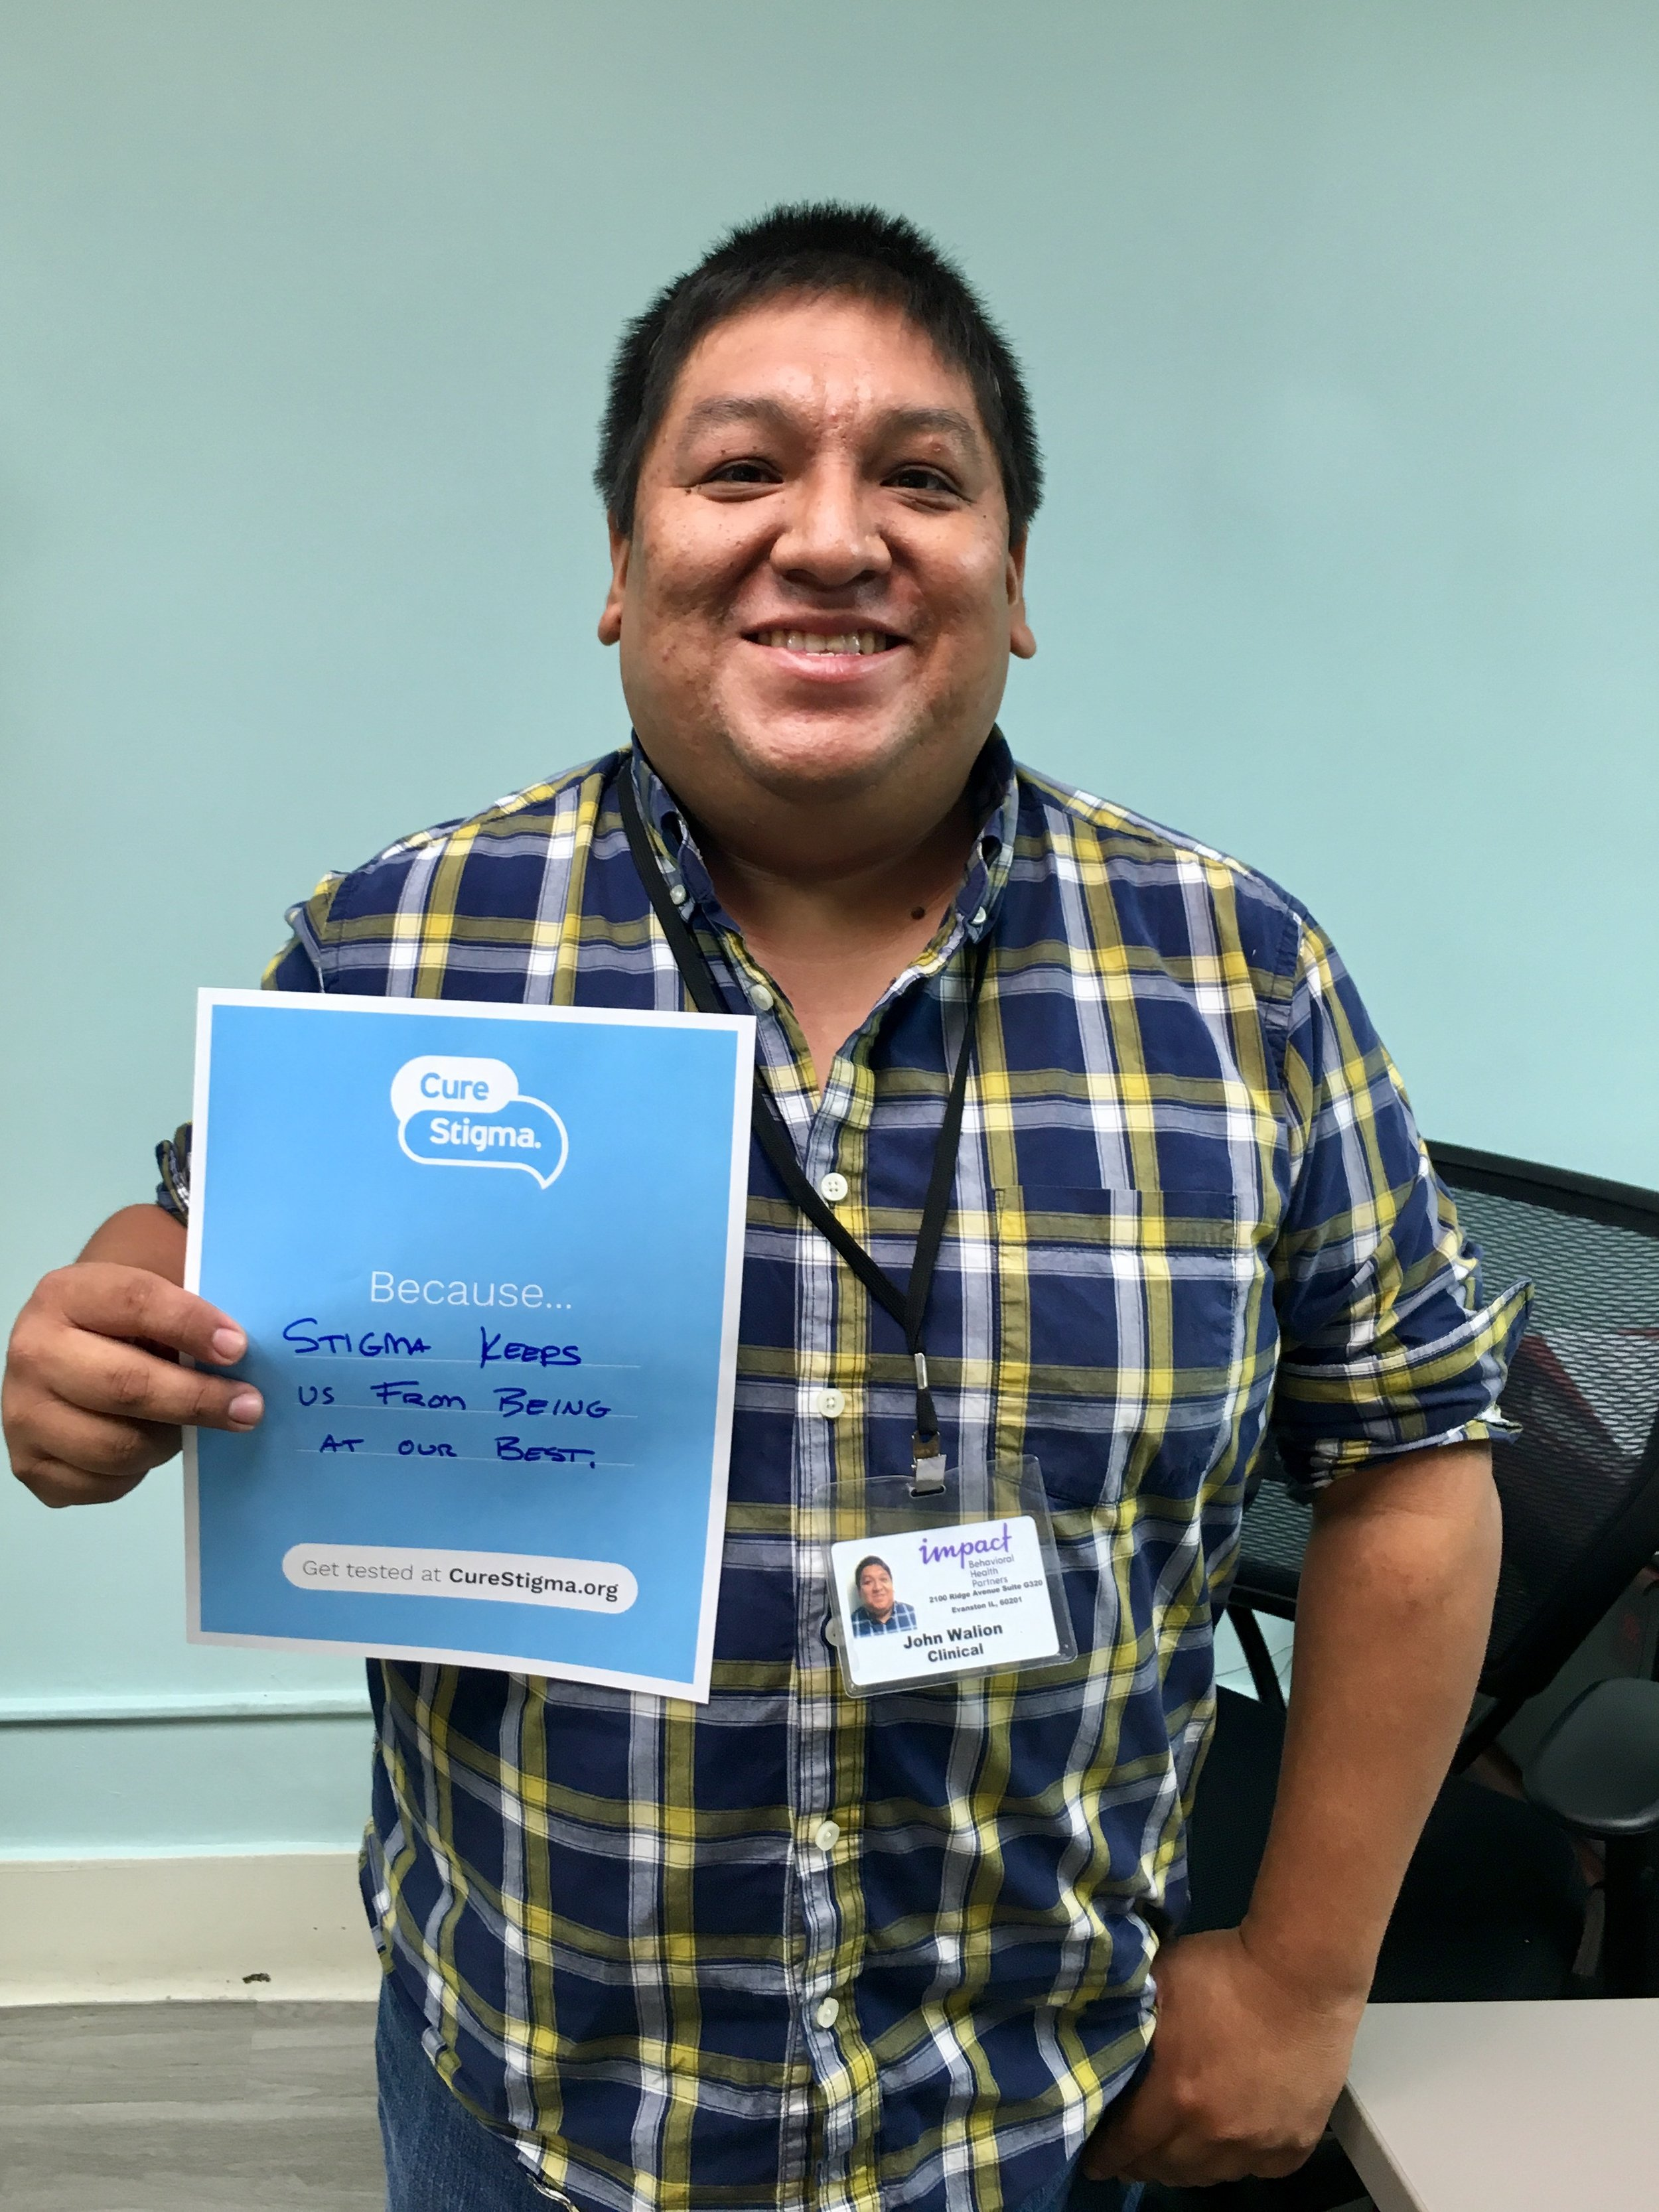 """""""Stigma keeps us from being at our best."""" - John, Impact Clinician"""